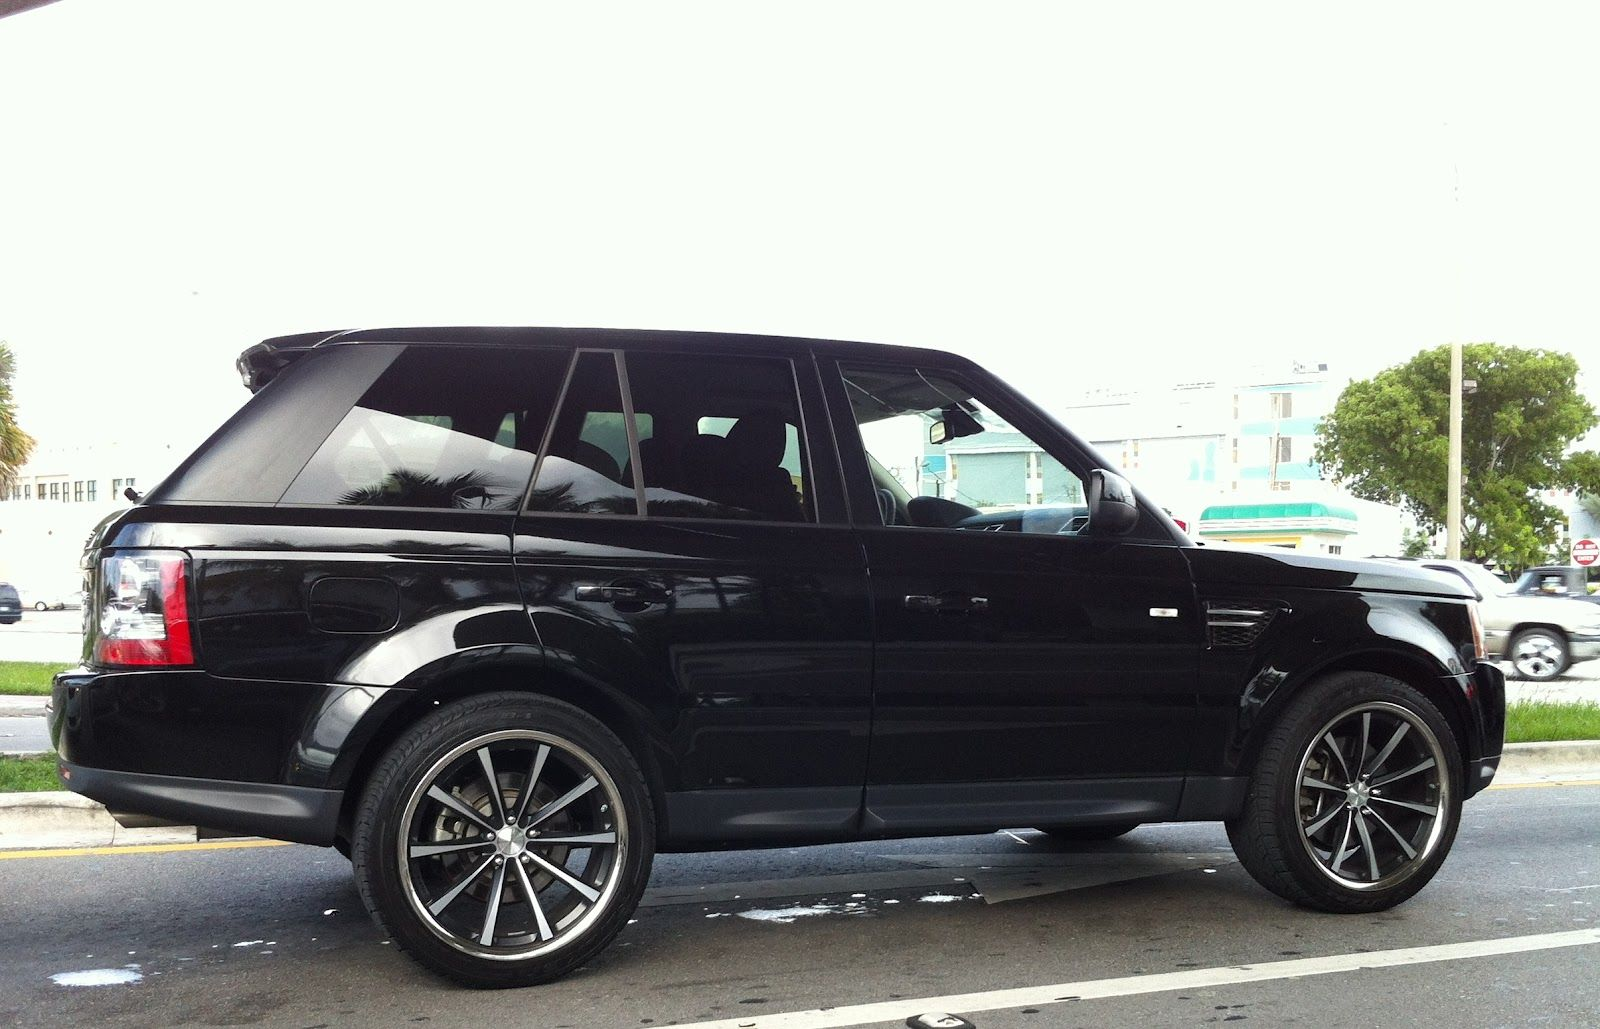 2012 Range Rover Sport Black Rims Find the Classic Rims of Your